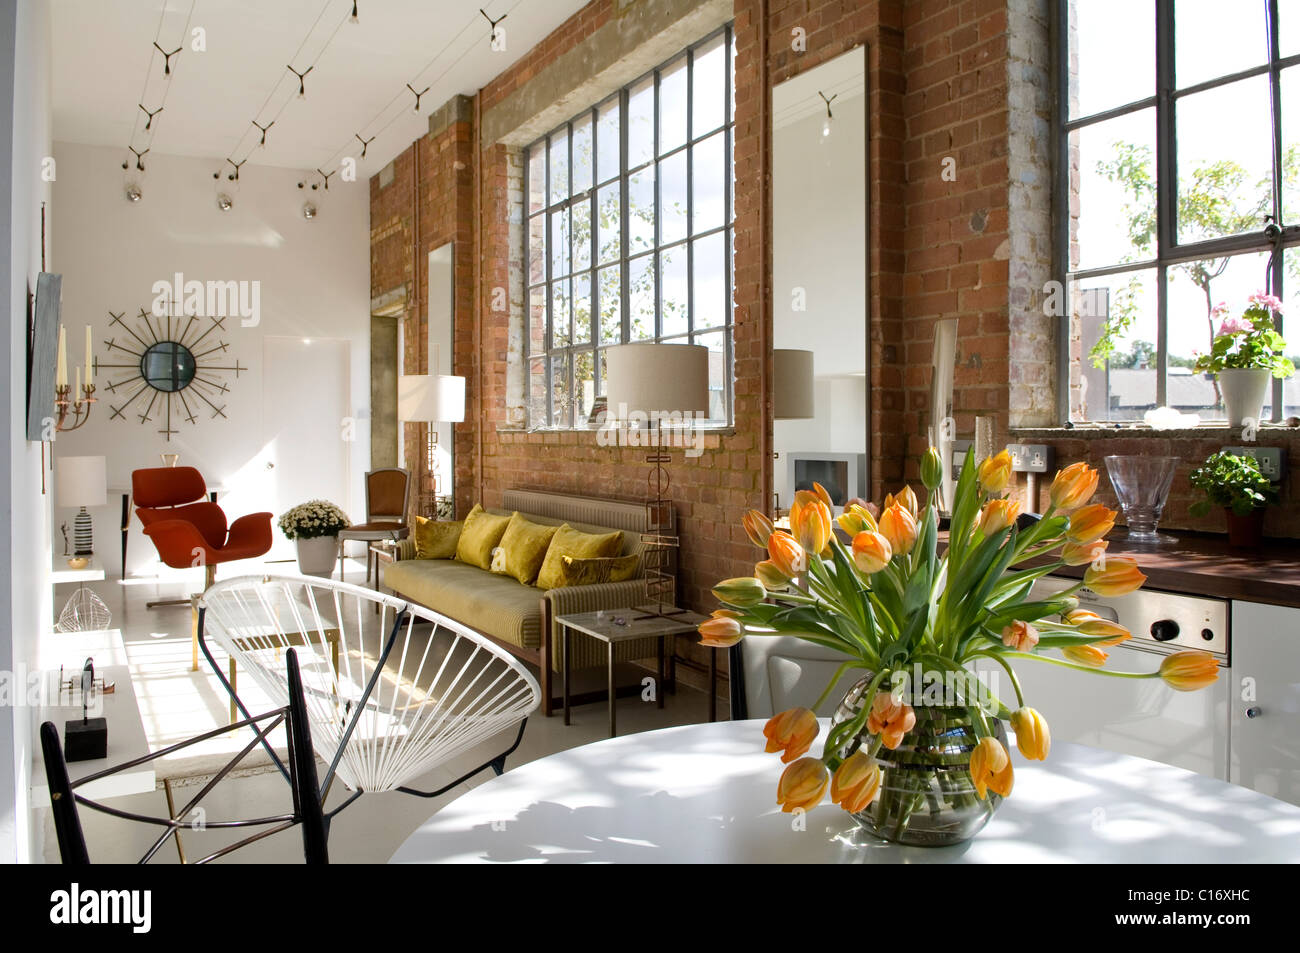 Acapulco chair living room - Open Plan Kitchen Living Space In Converted Warehouse With Crittal Windows Acapulco Chair And Sunburst Mirror